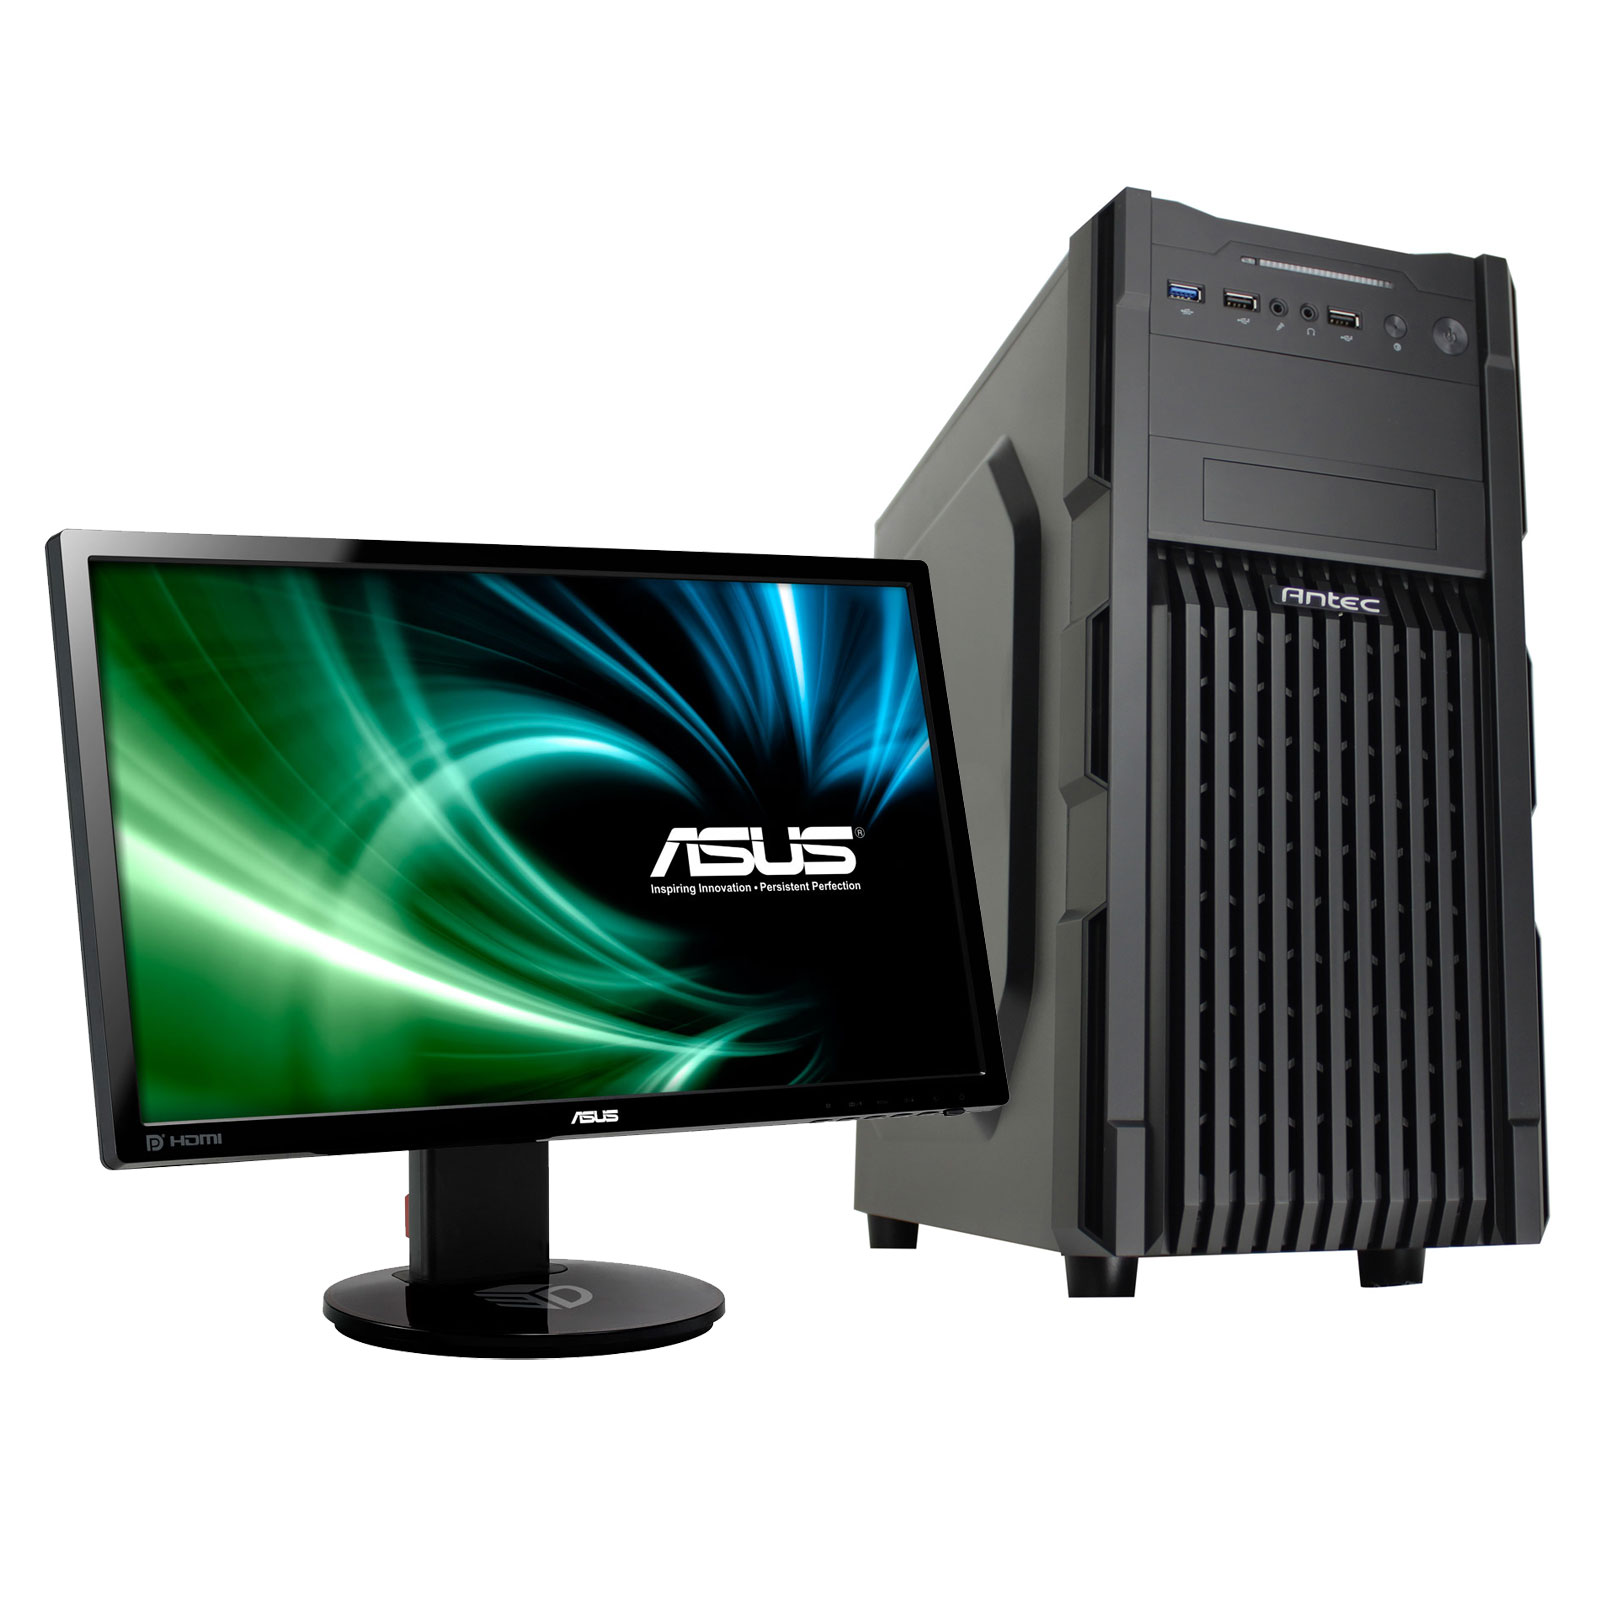 ldlc pc fortress asus 24 led 3d vg248qe pc de bureau ldlc sur. Black Bedroom Furniture Sets. Home Design Ideas